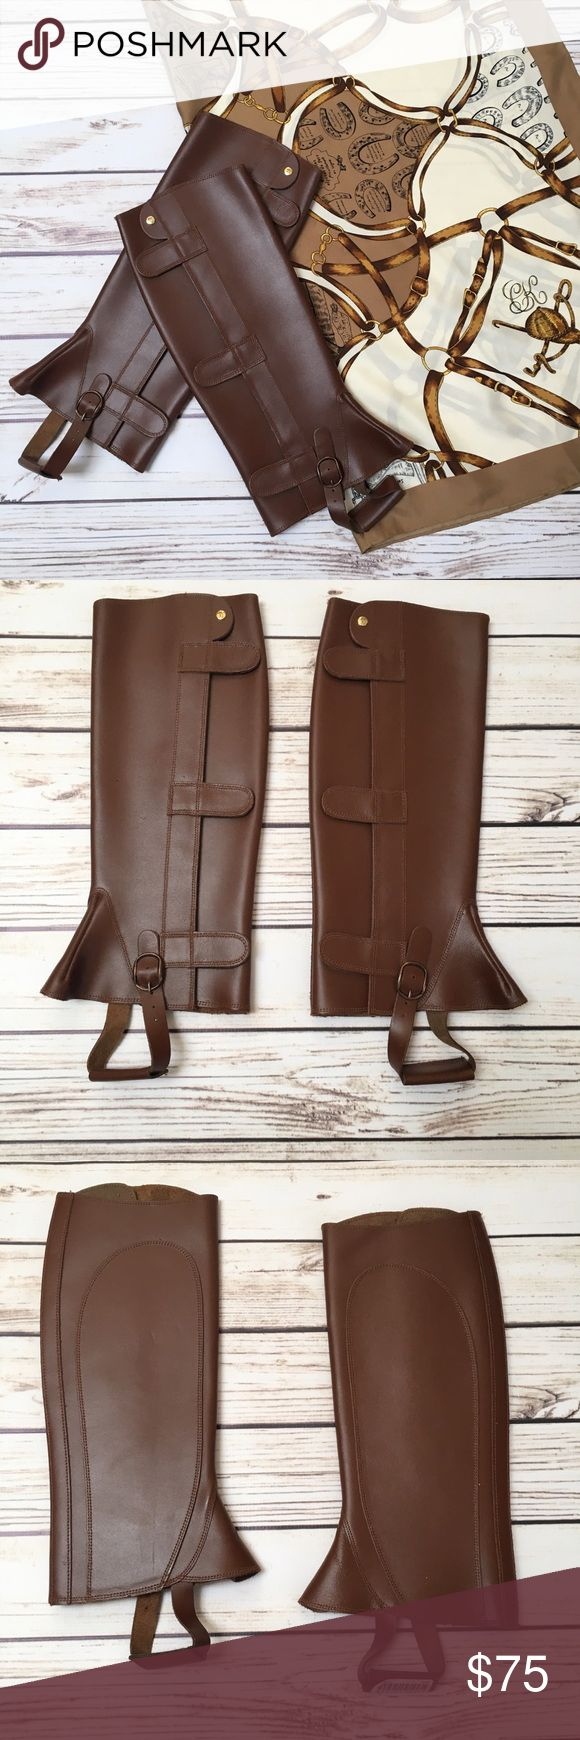 NEW RALP LAUREN Leather Riding Boot Chaps 🐎 NEW RALP LAUREN Leather Riding Boot Chaps 🐎. These cover your boots to keep them clean and scratch free while riding. Great for casual riders and polo lathered alike. Size S. Beautiful. Brand New in perfect condition. Ralph Lauren Shoes Combat & Moto Boots